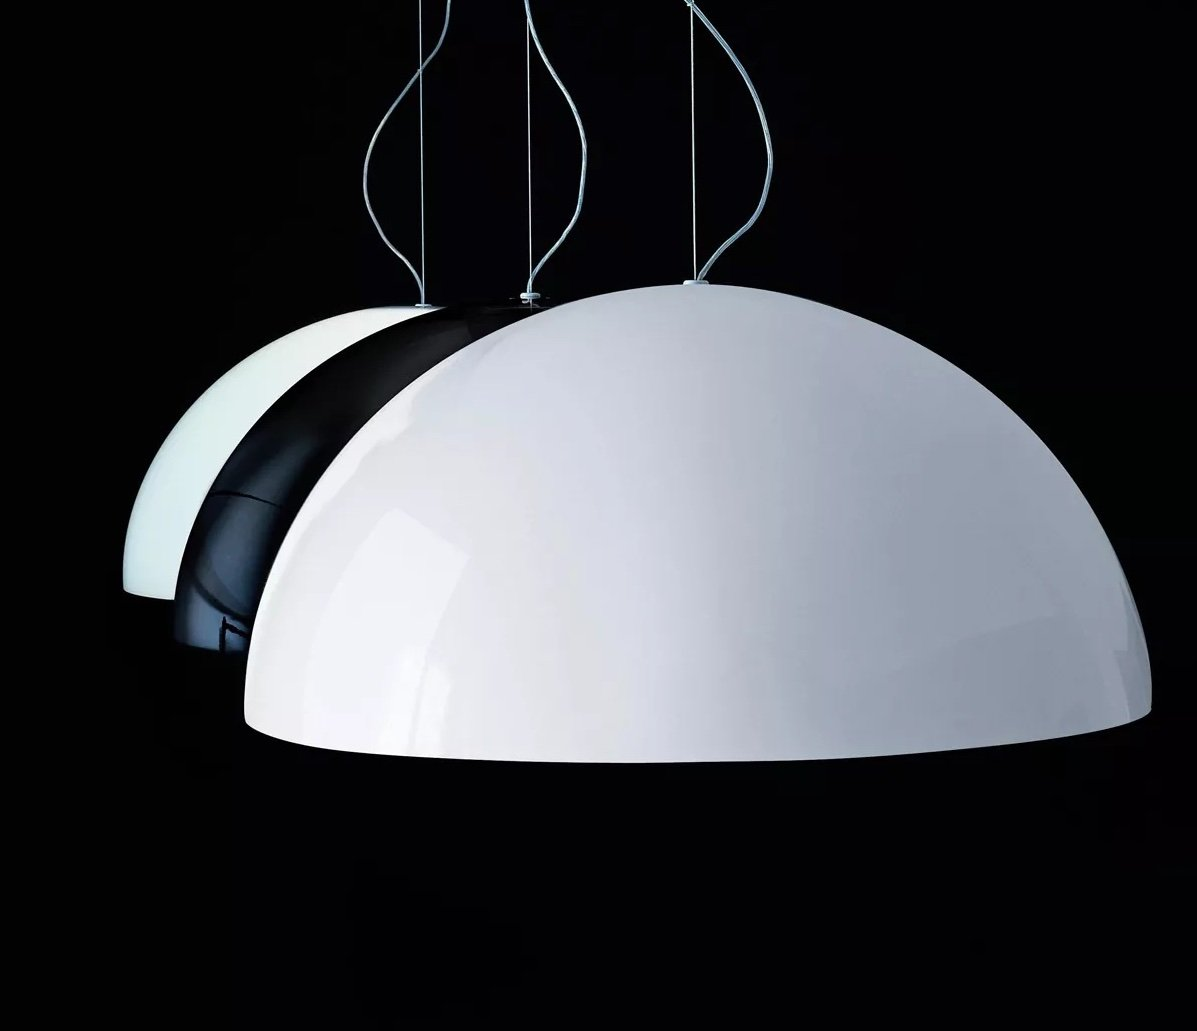 Sonora Suspension Lamp lighting from Oluce, designed by Vico Magistretti